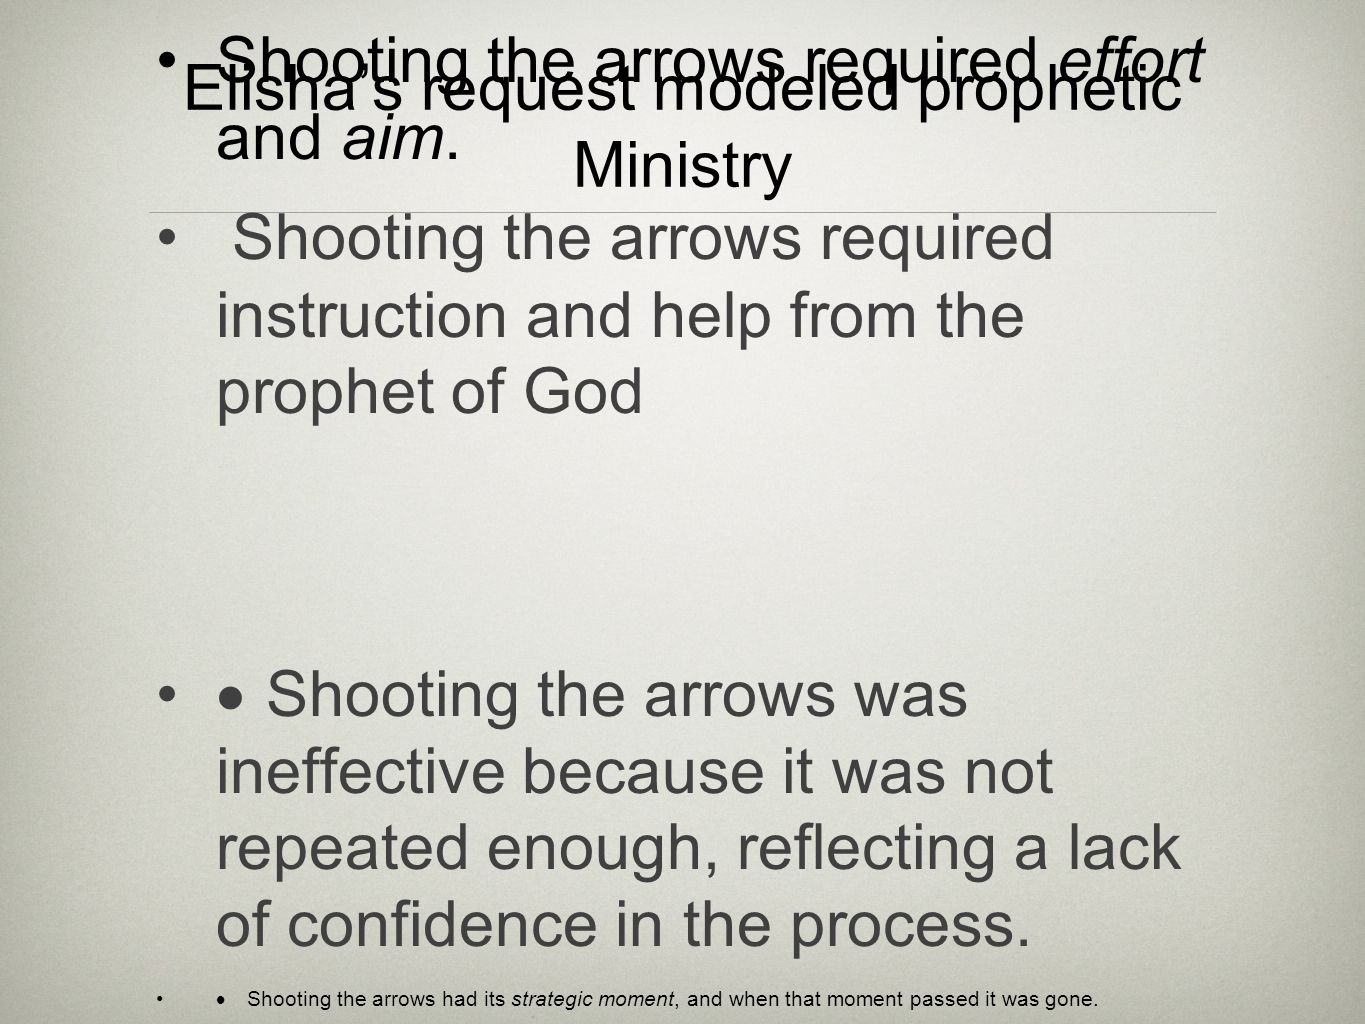 Elisha's request modeled prophetic Ministry Shooting the arrows required effort and aim. Shooting the arrows required instruction and help from the pr